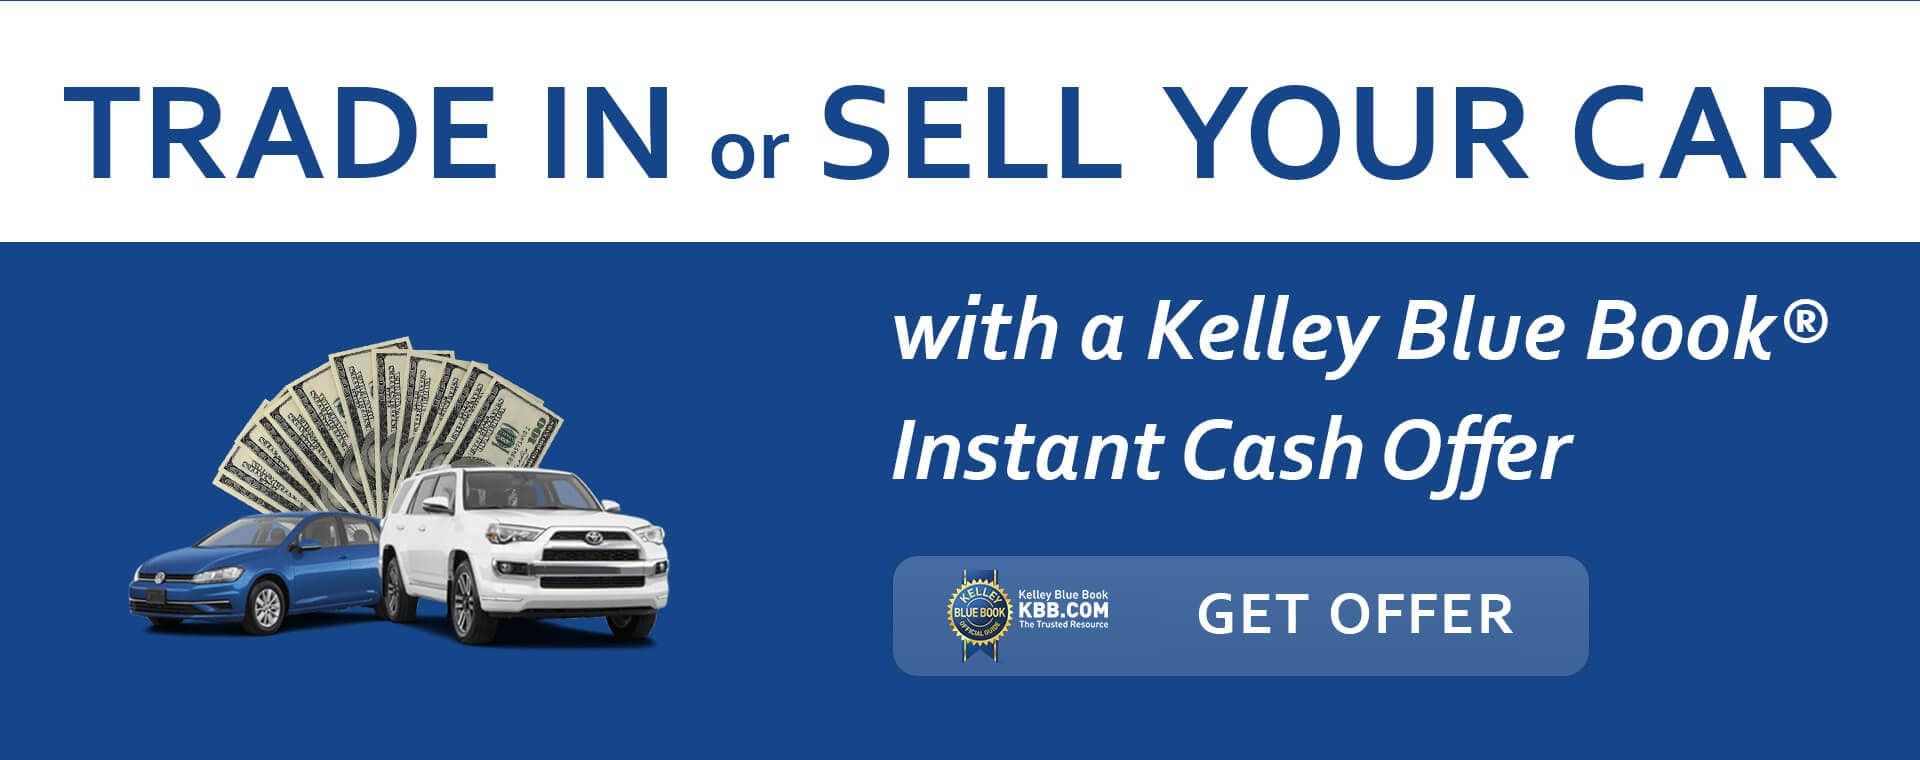 TRADE IN or SELL YOUR CAR with Kelley Blue Book Instant Cash Offer Get Offer